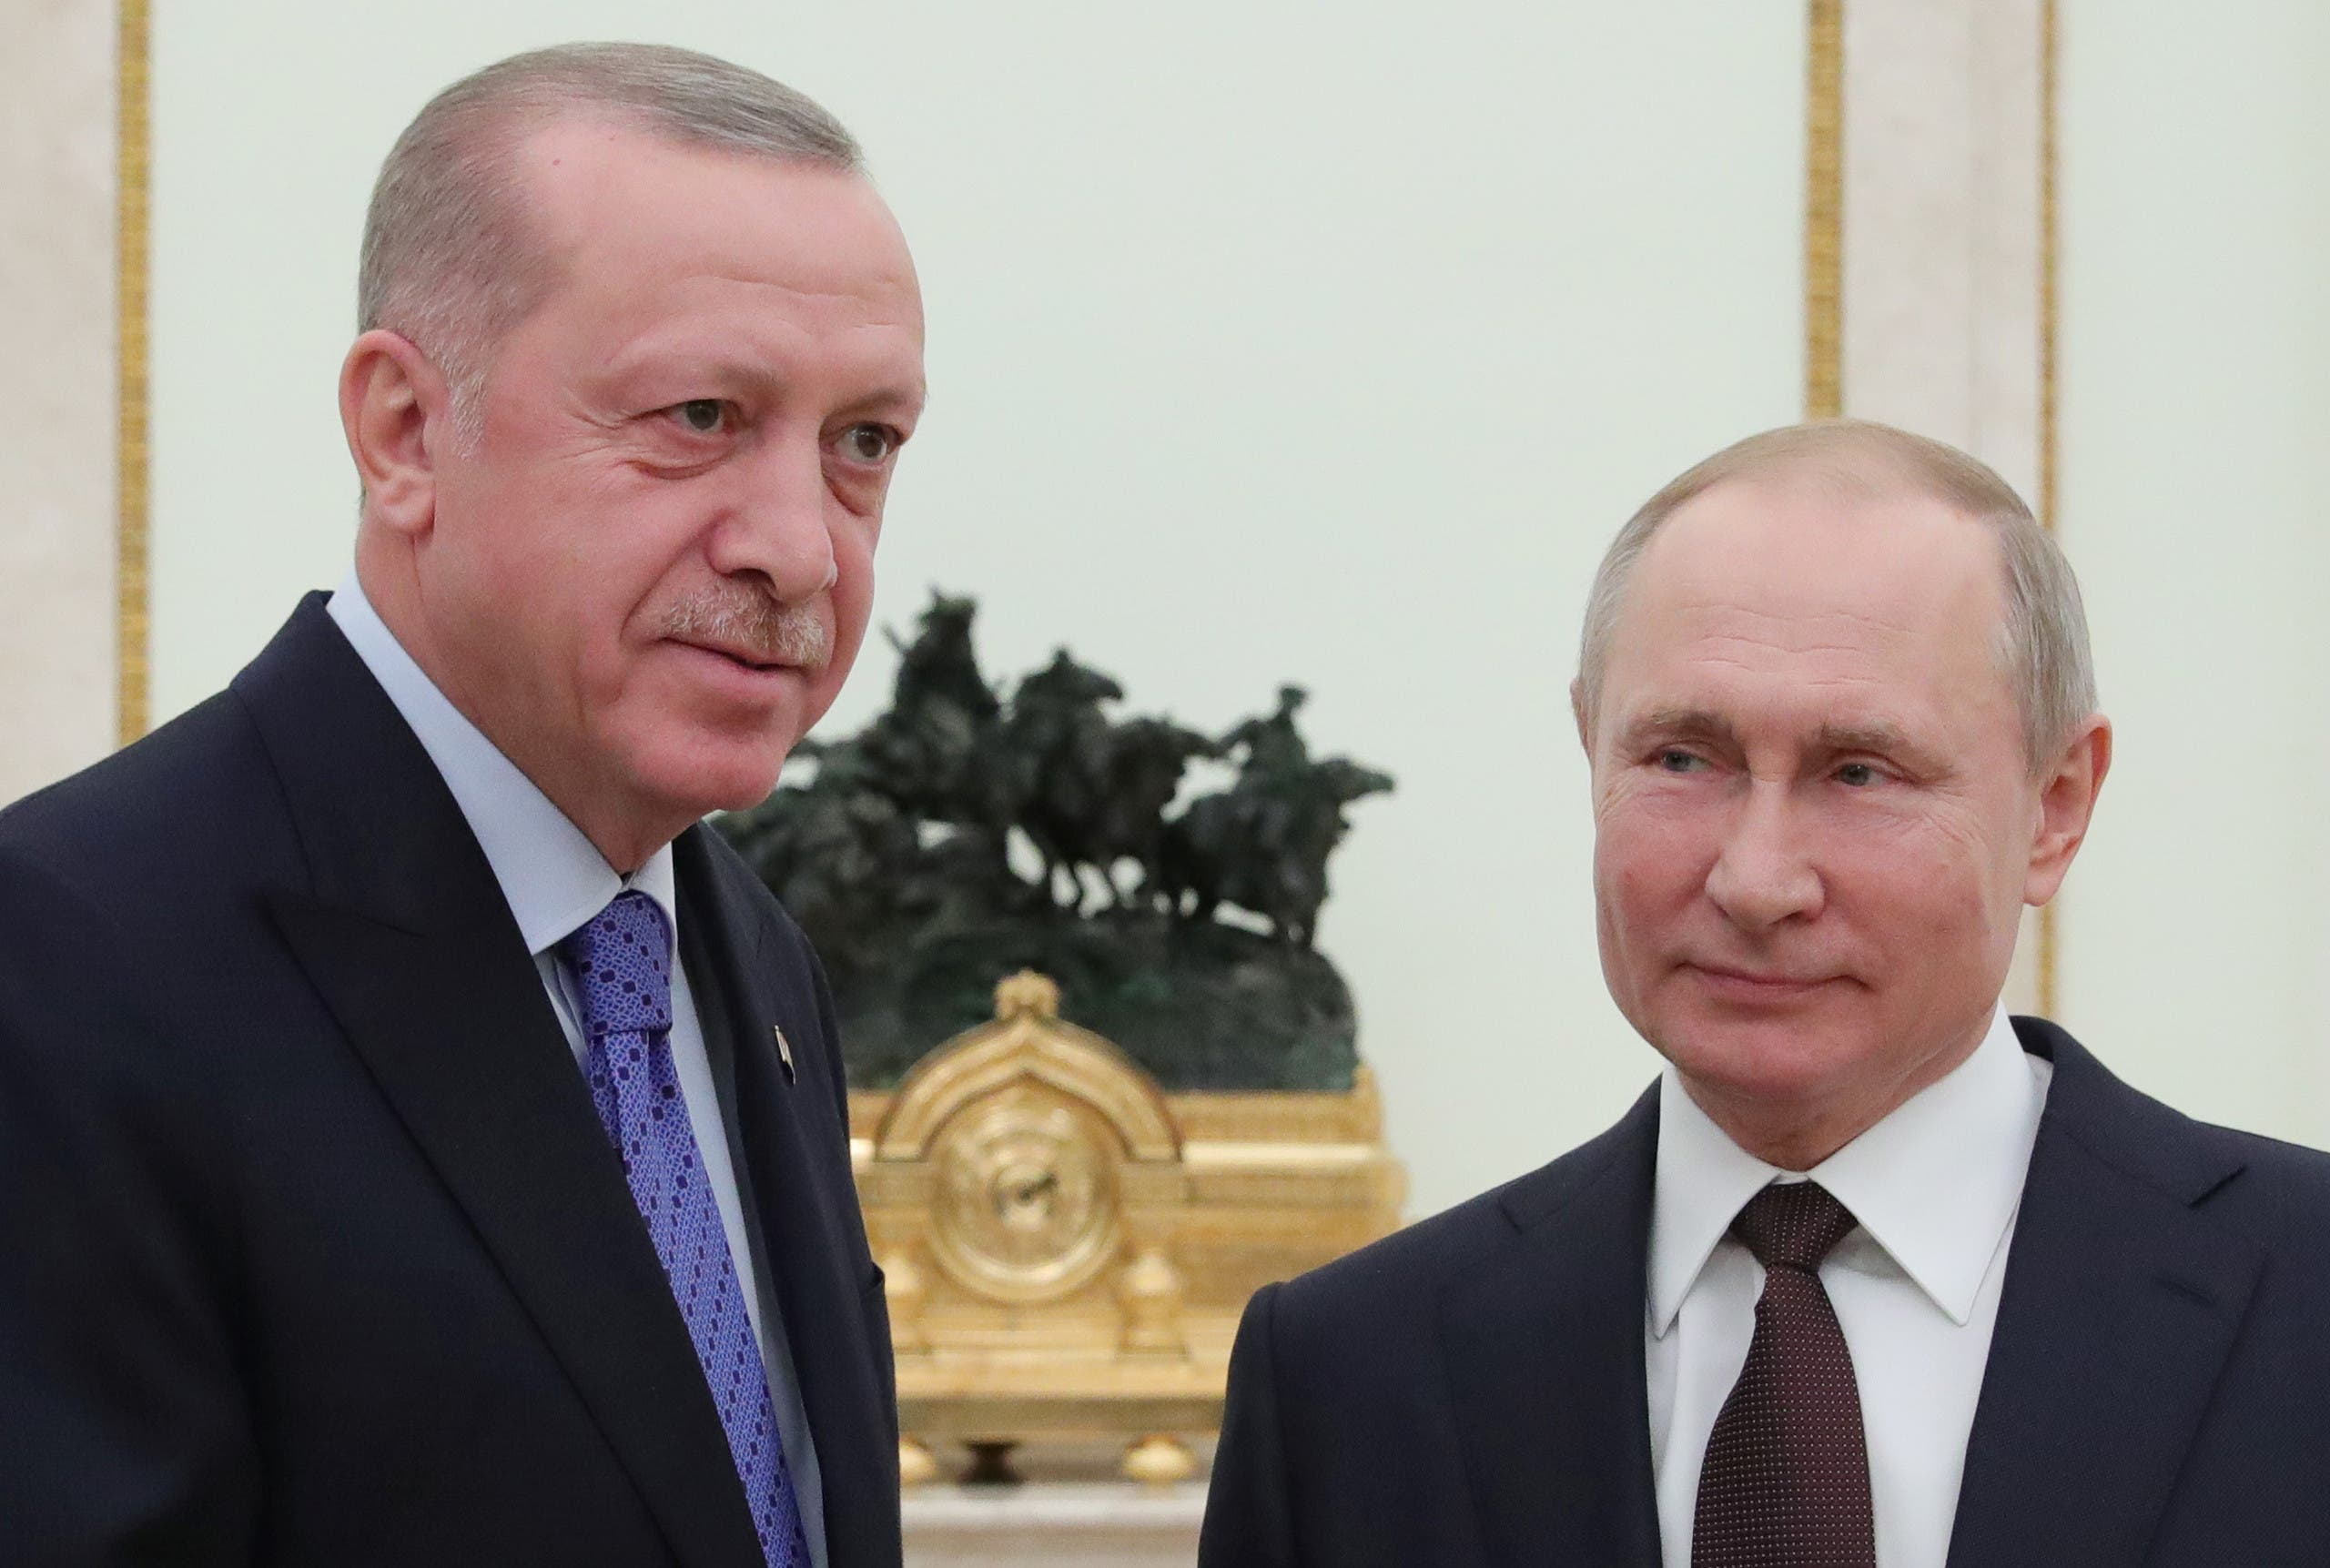 Russian President Vladimir Putin and Turkish President Tayyip Erdogan pose for a photo during a meeting in Moscow, Russia March 5, 2020. (Reuters)